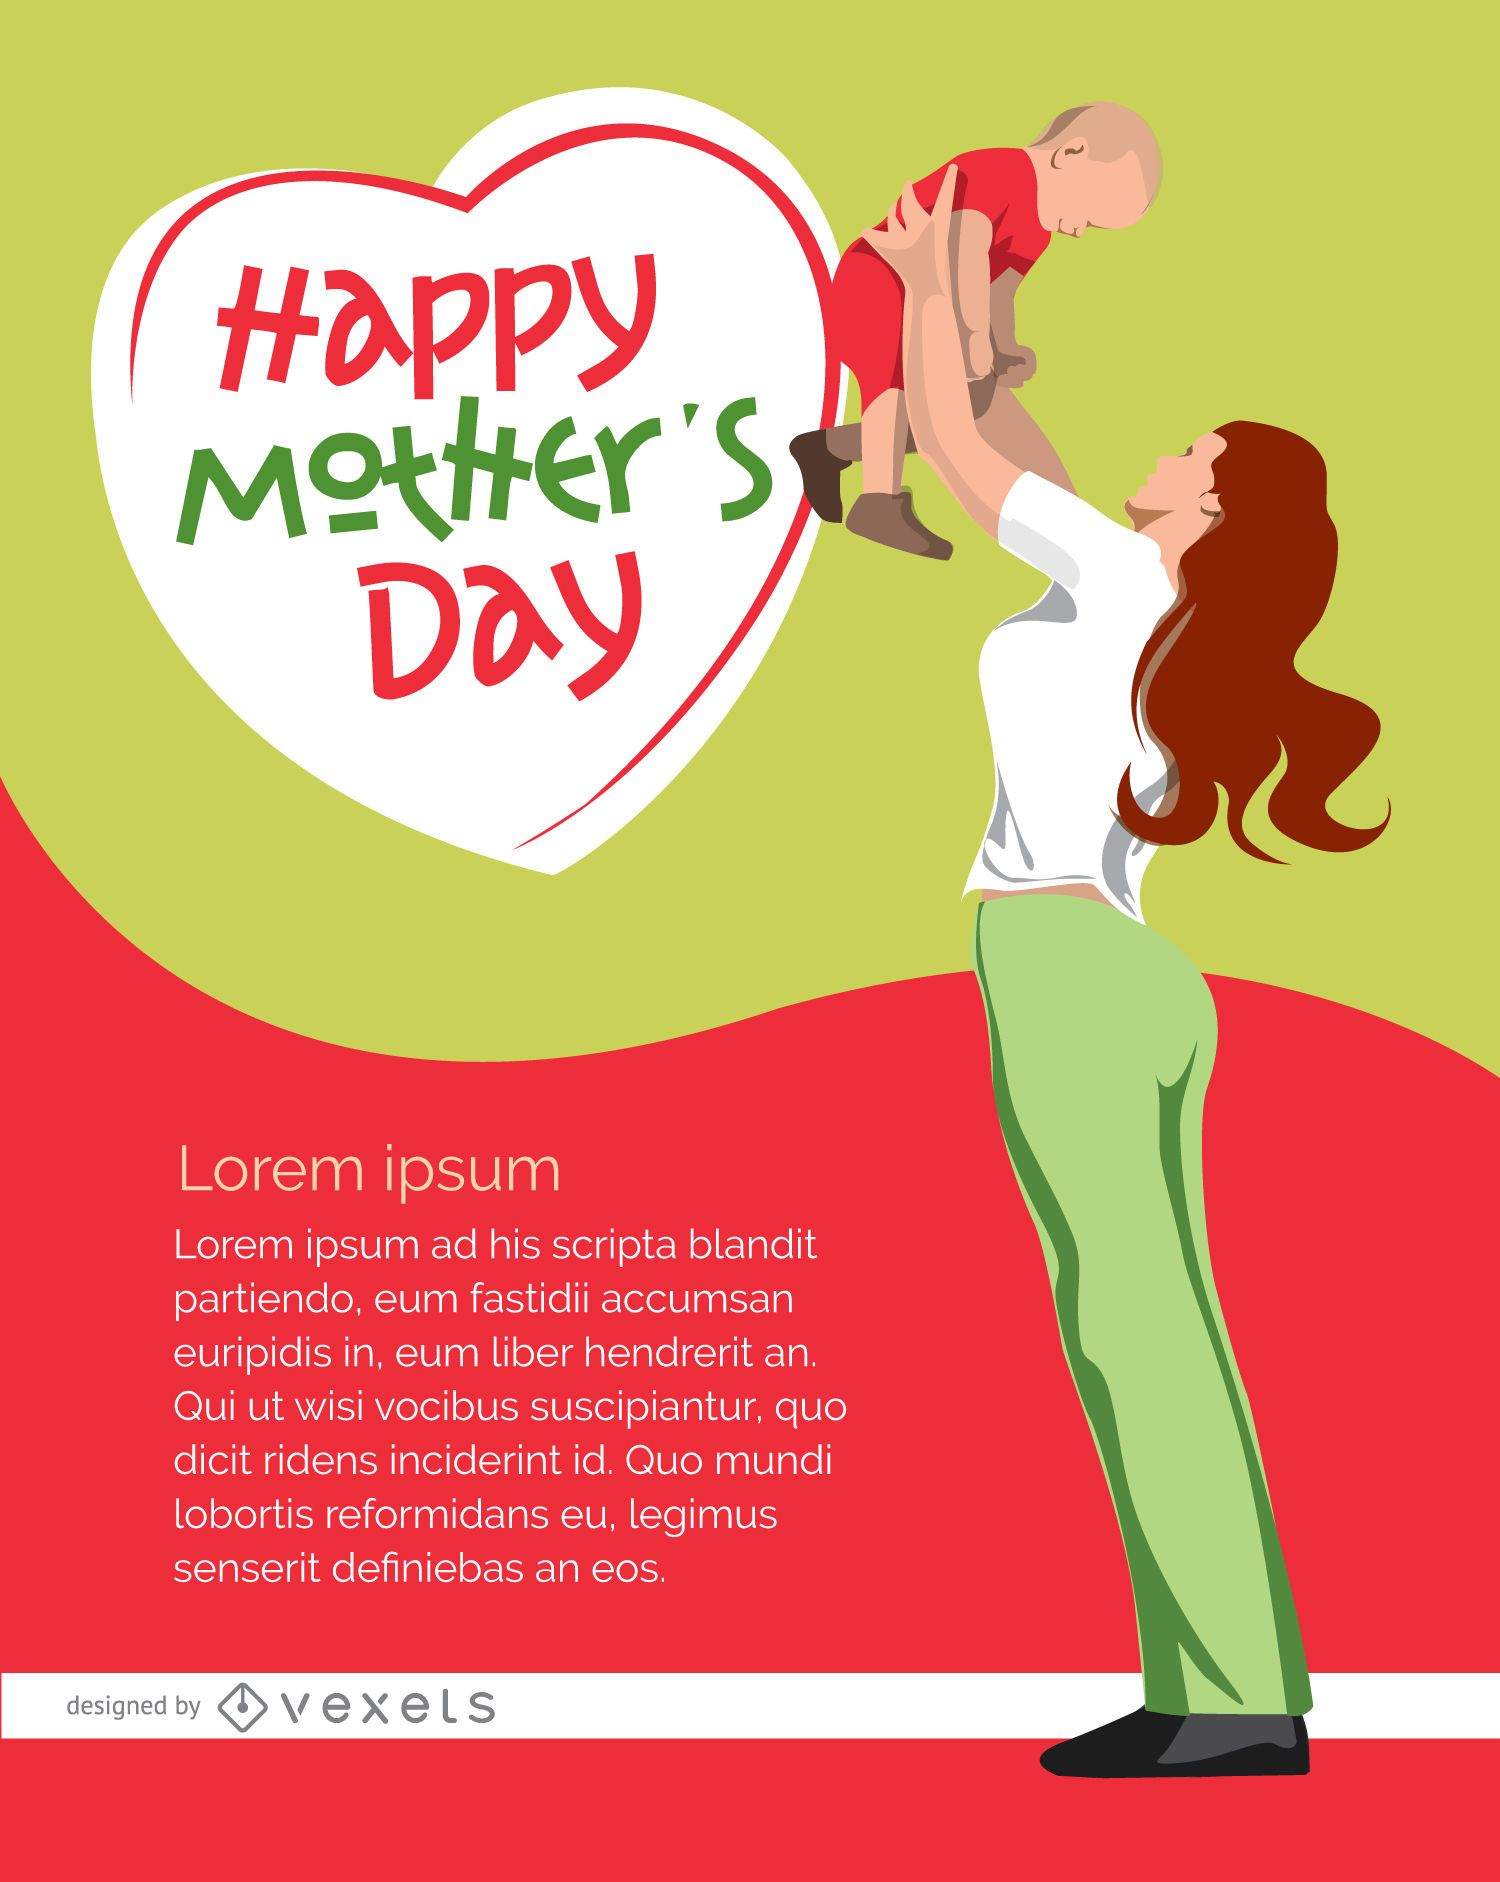 Happy Mother?s Day poster